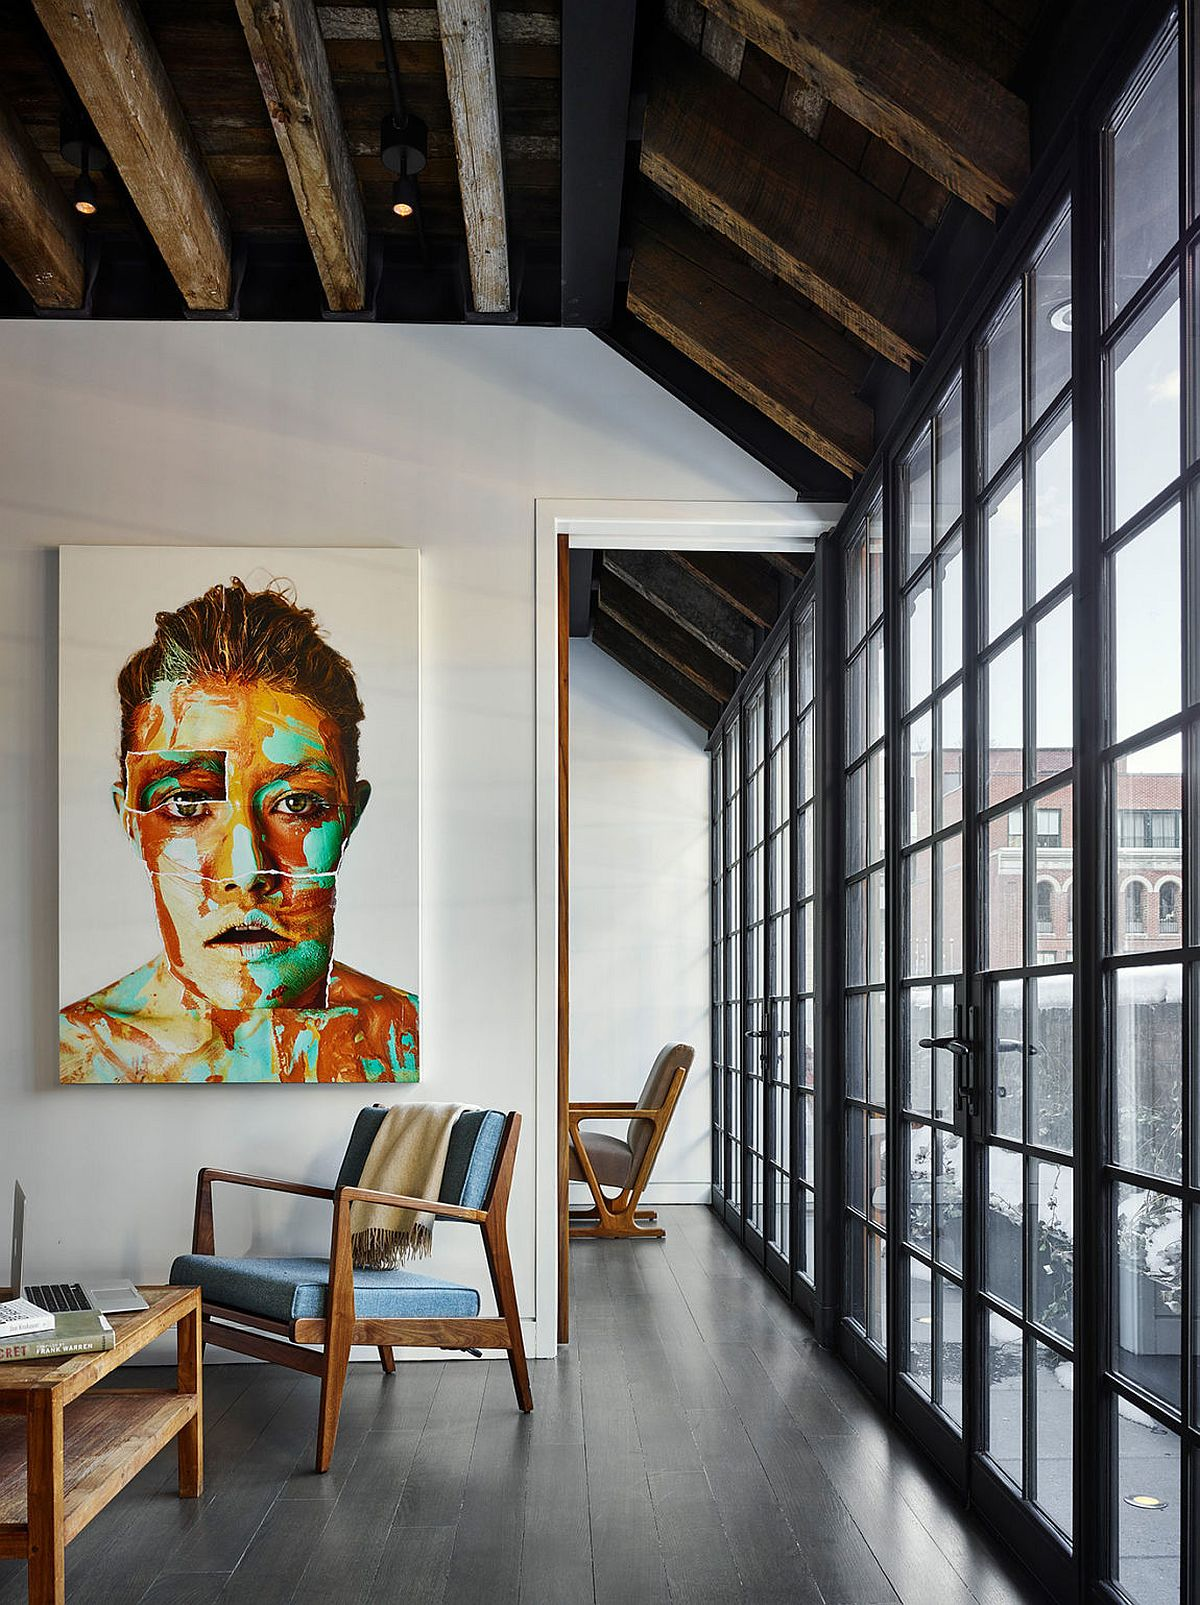 Contemporary design elements combined with industrial past of New Yor penthouse